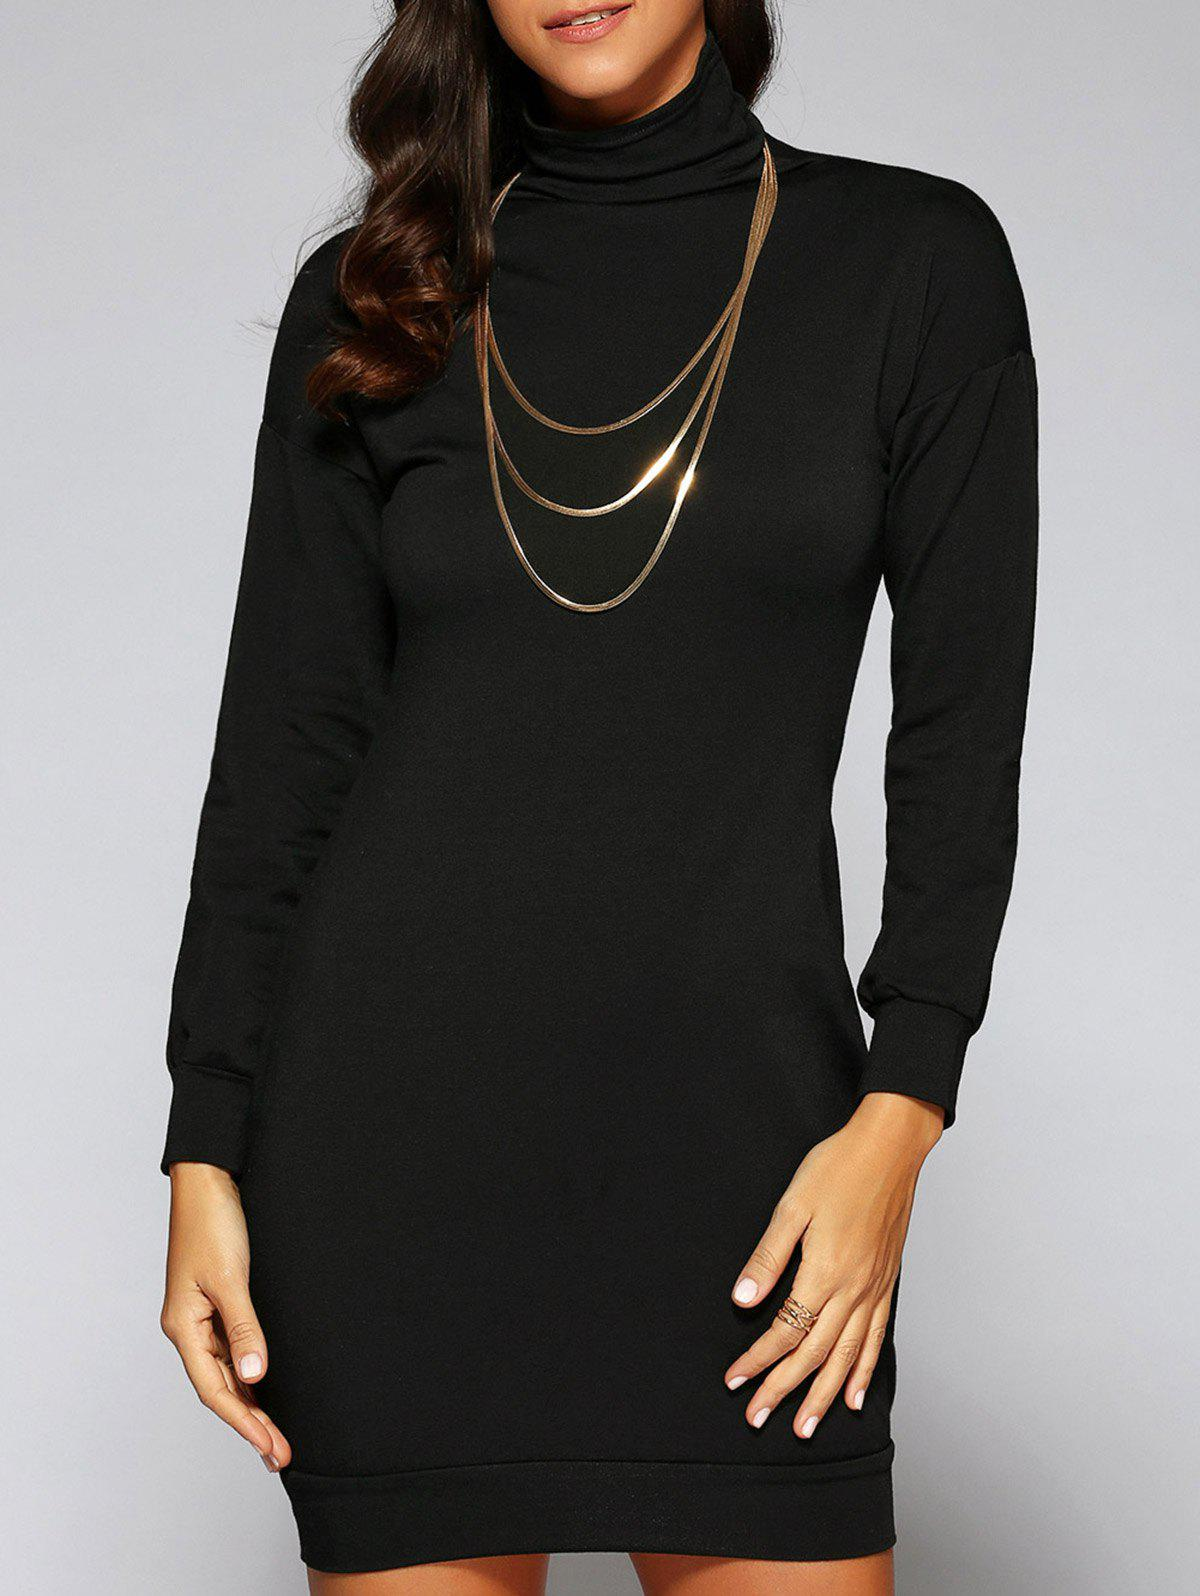 Turtle Neck Massimo Dress - BLACK S